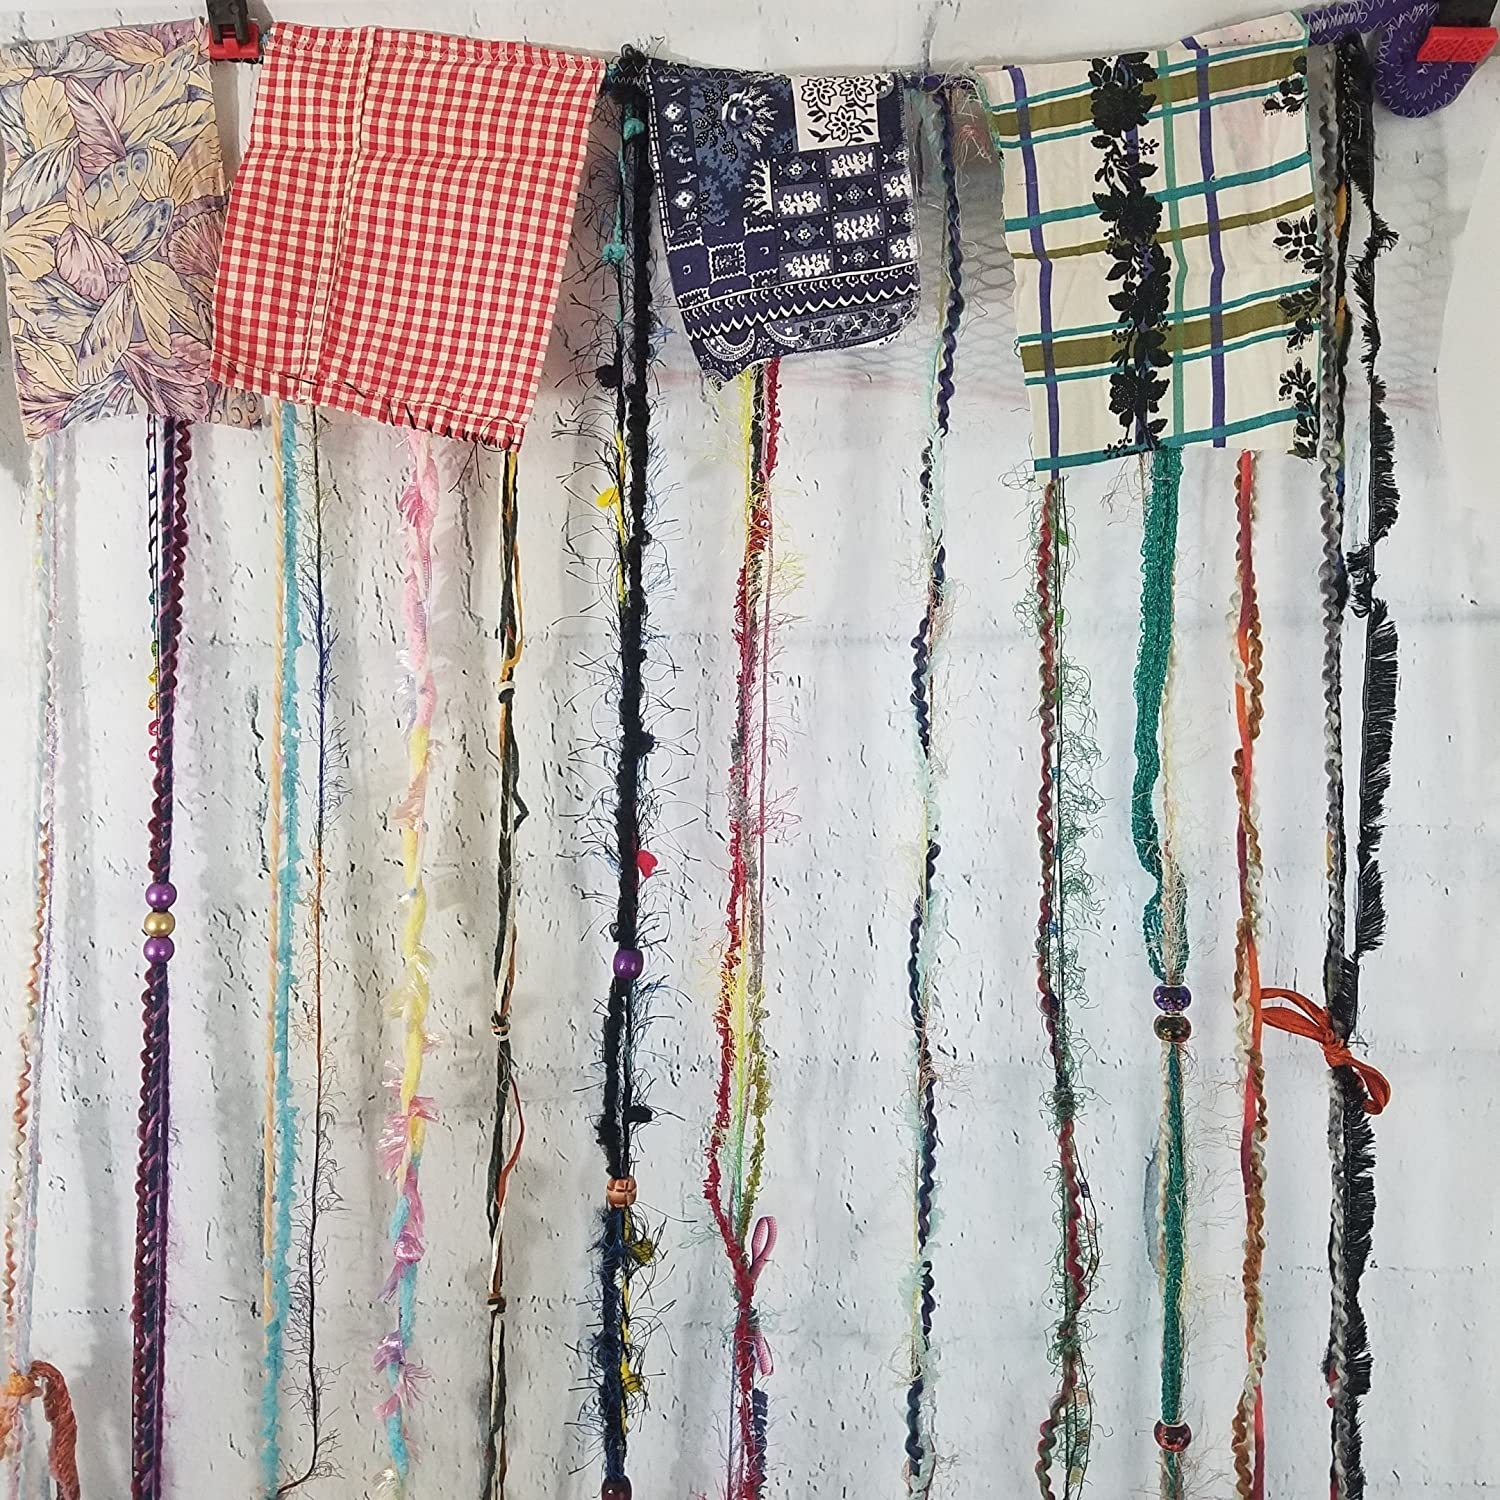 Amazoncom Hippie Gypsy Hanging Beaded Curtain, Room Divider, Door Curtain,